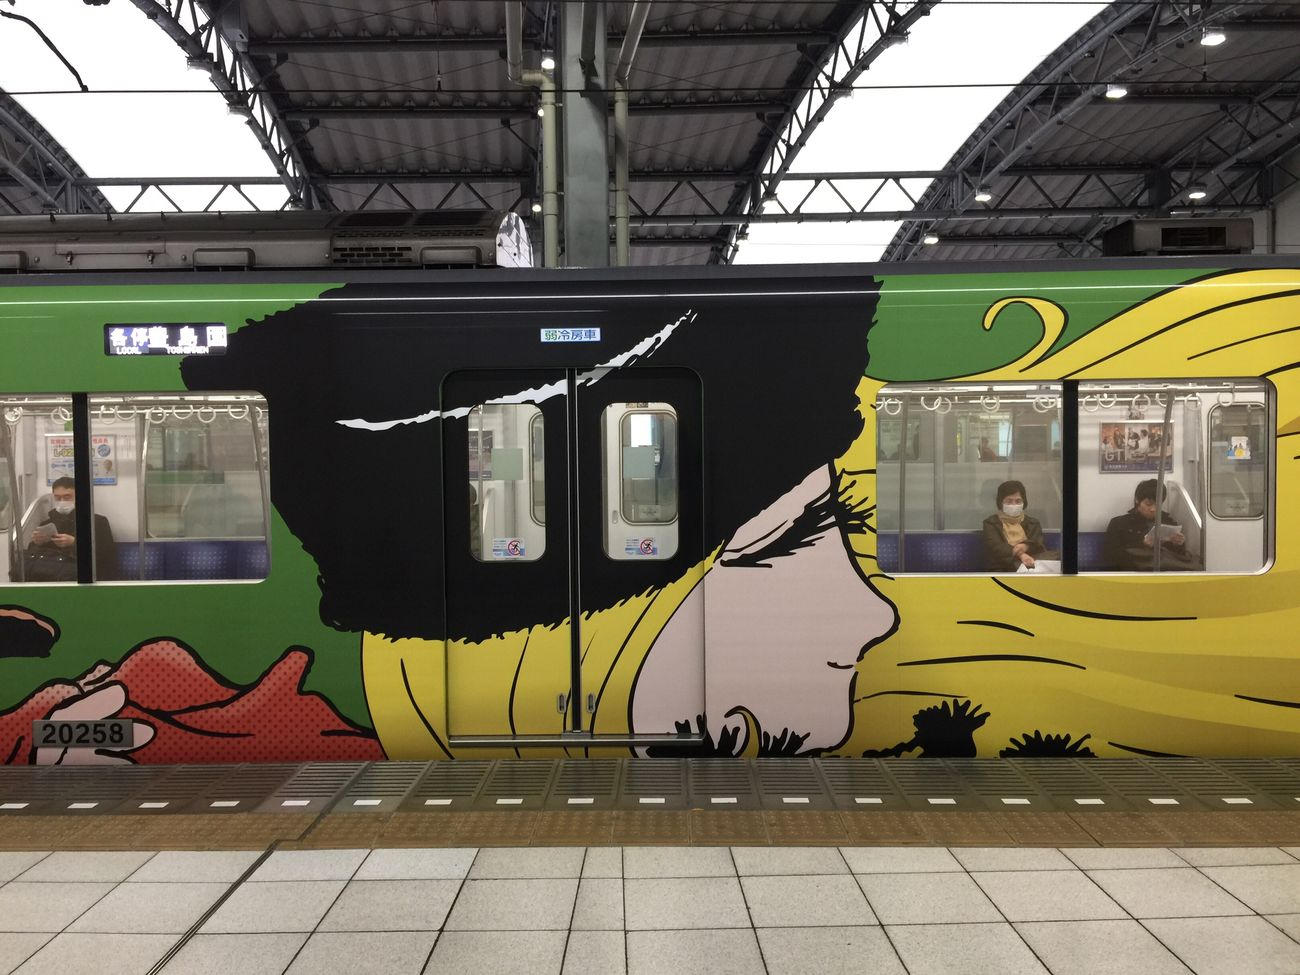 Adapted To The City Discover Your City Tadaa Community Traveling Check This Out Urban Art Travel Anime Manga Train Train Station Japanese Culture Tokyo